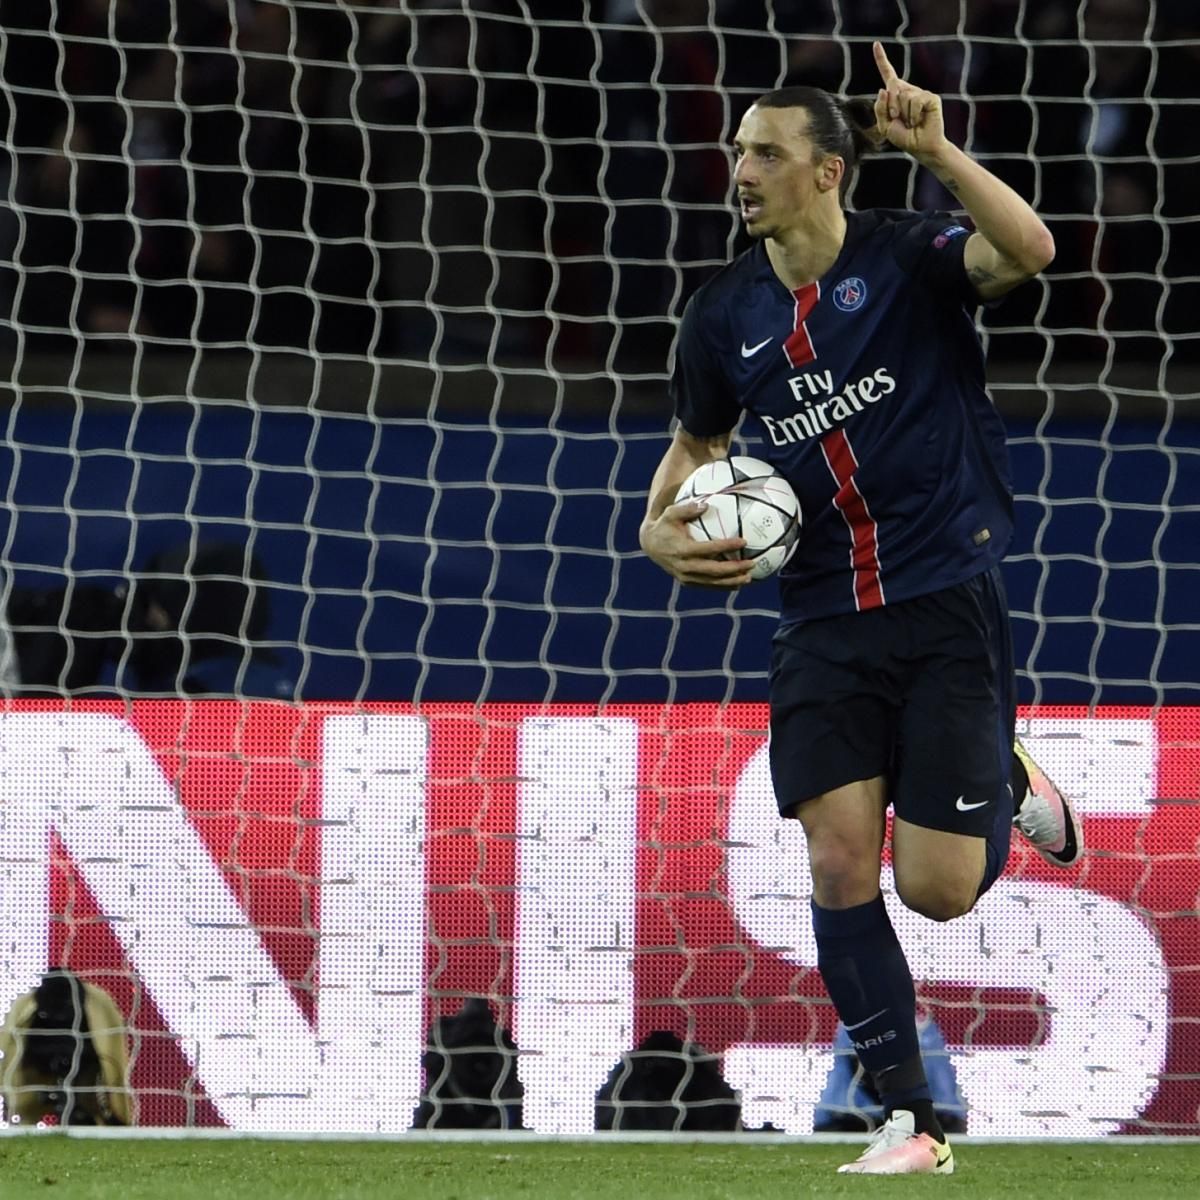 Malmo Vs Psg Winners And Losers From Champions League: PSG Vs. Manchester City: Winners And Losers From Champions